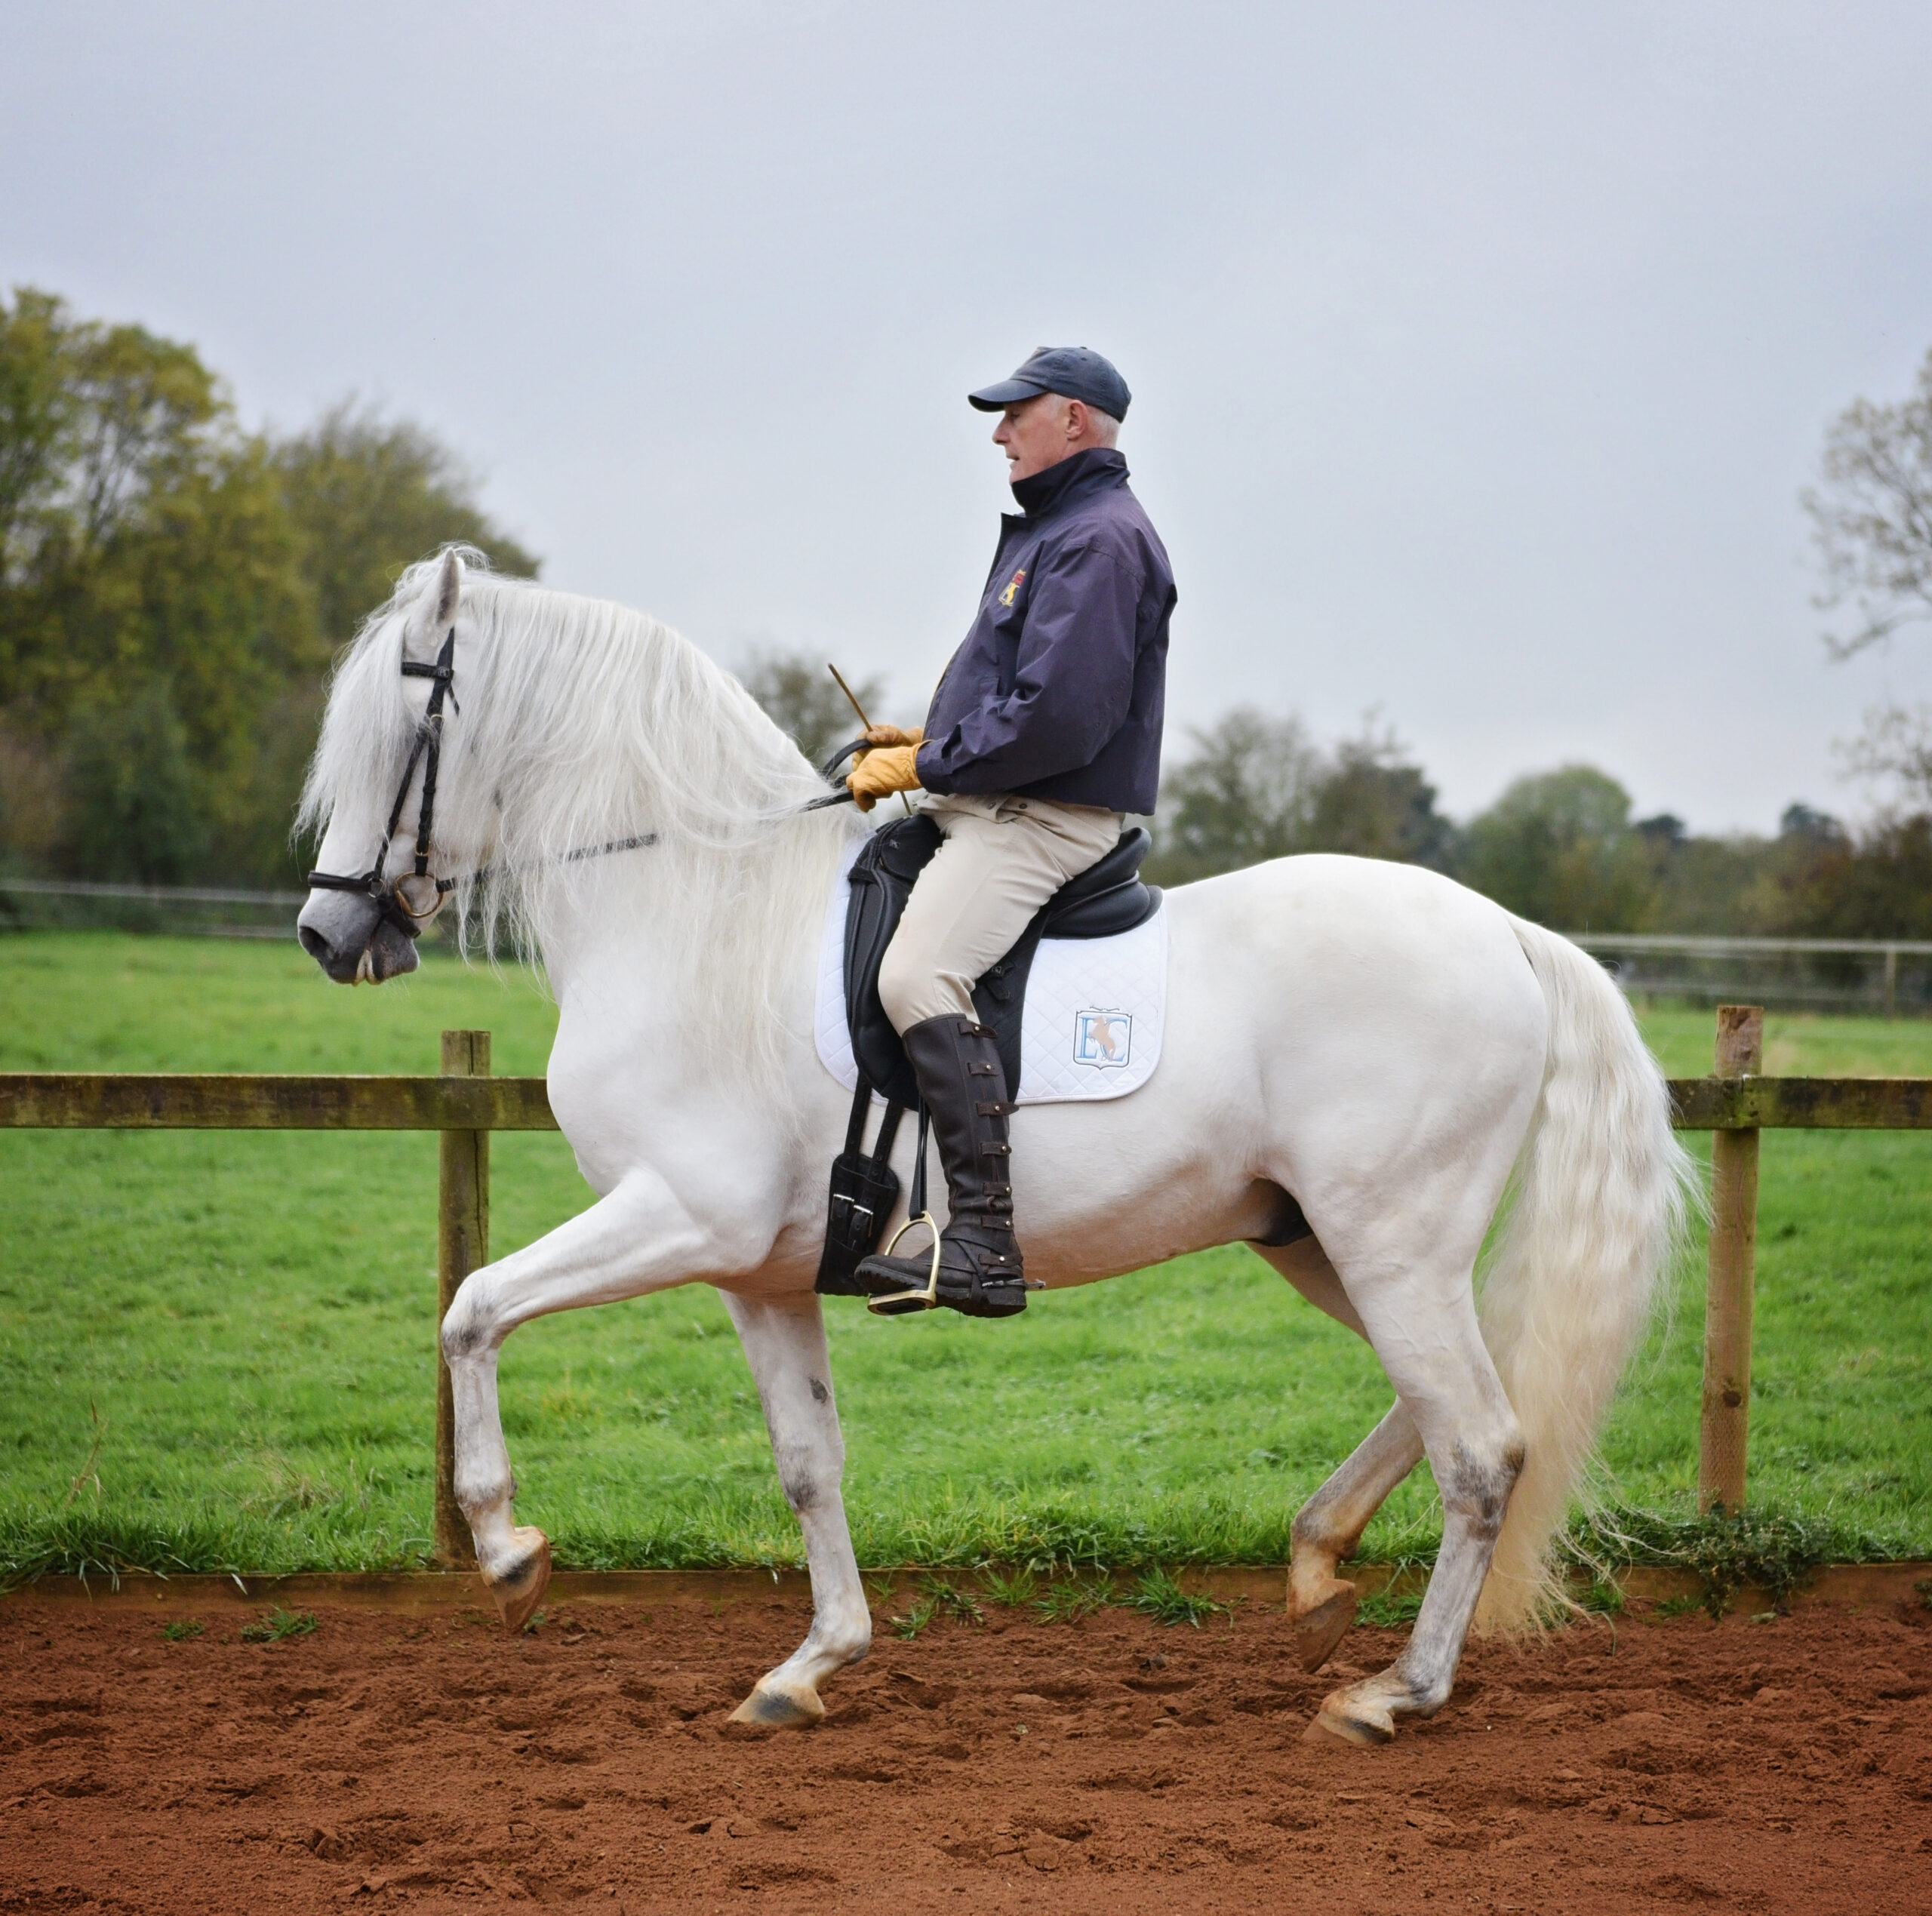 Peter Maddison-Greenwell, classical dressage trainer